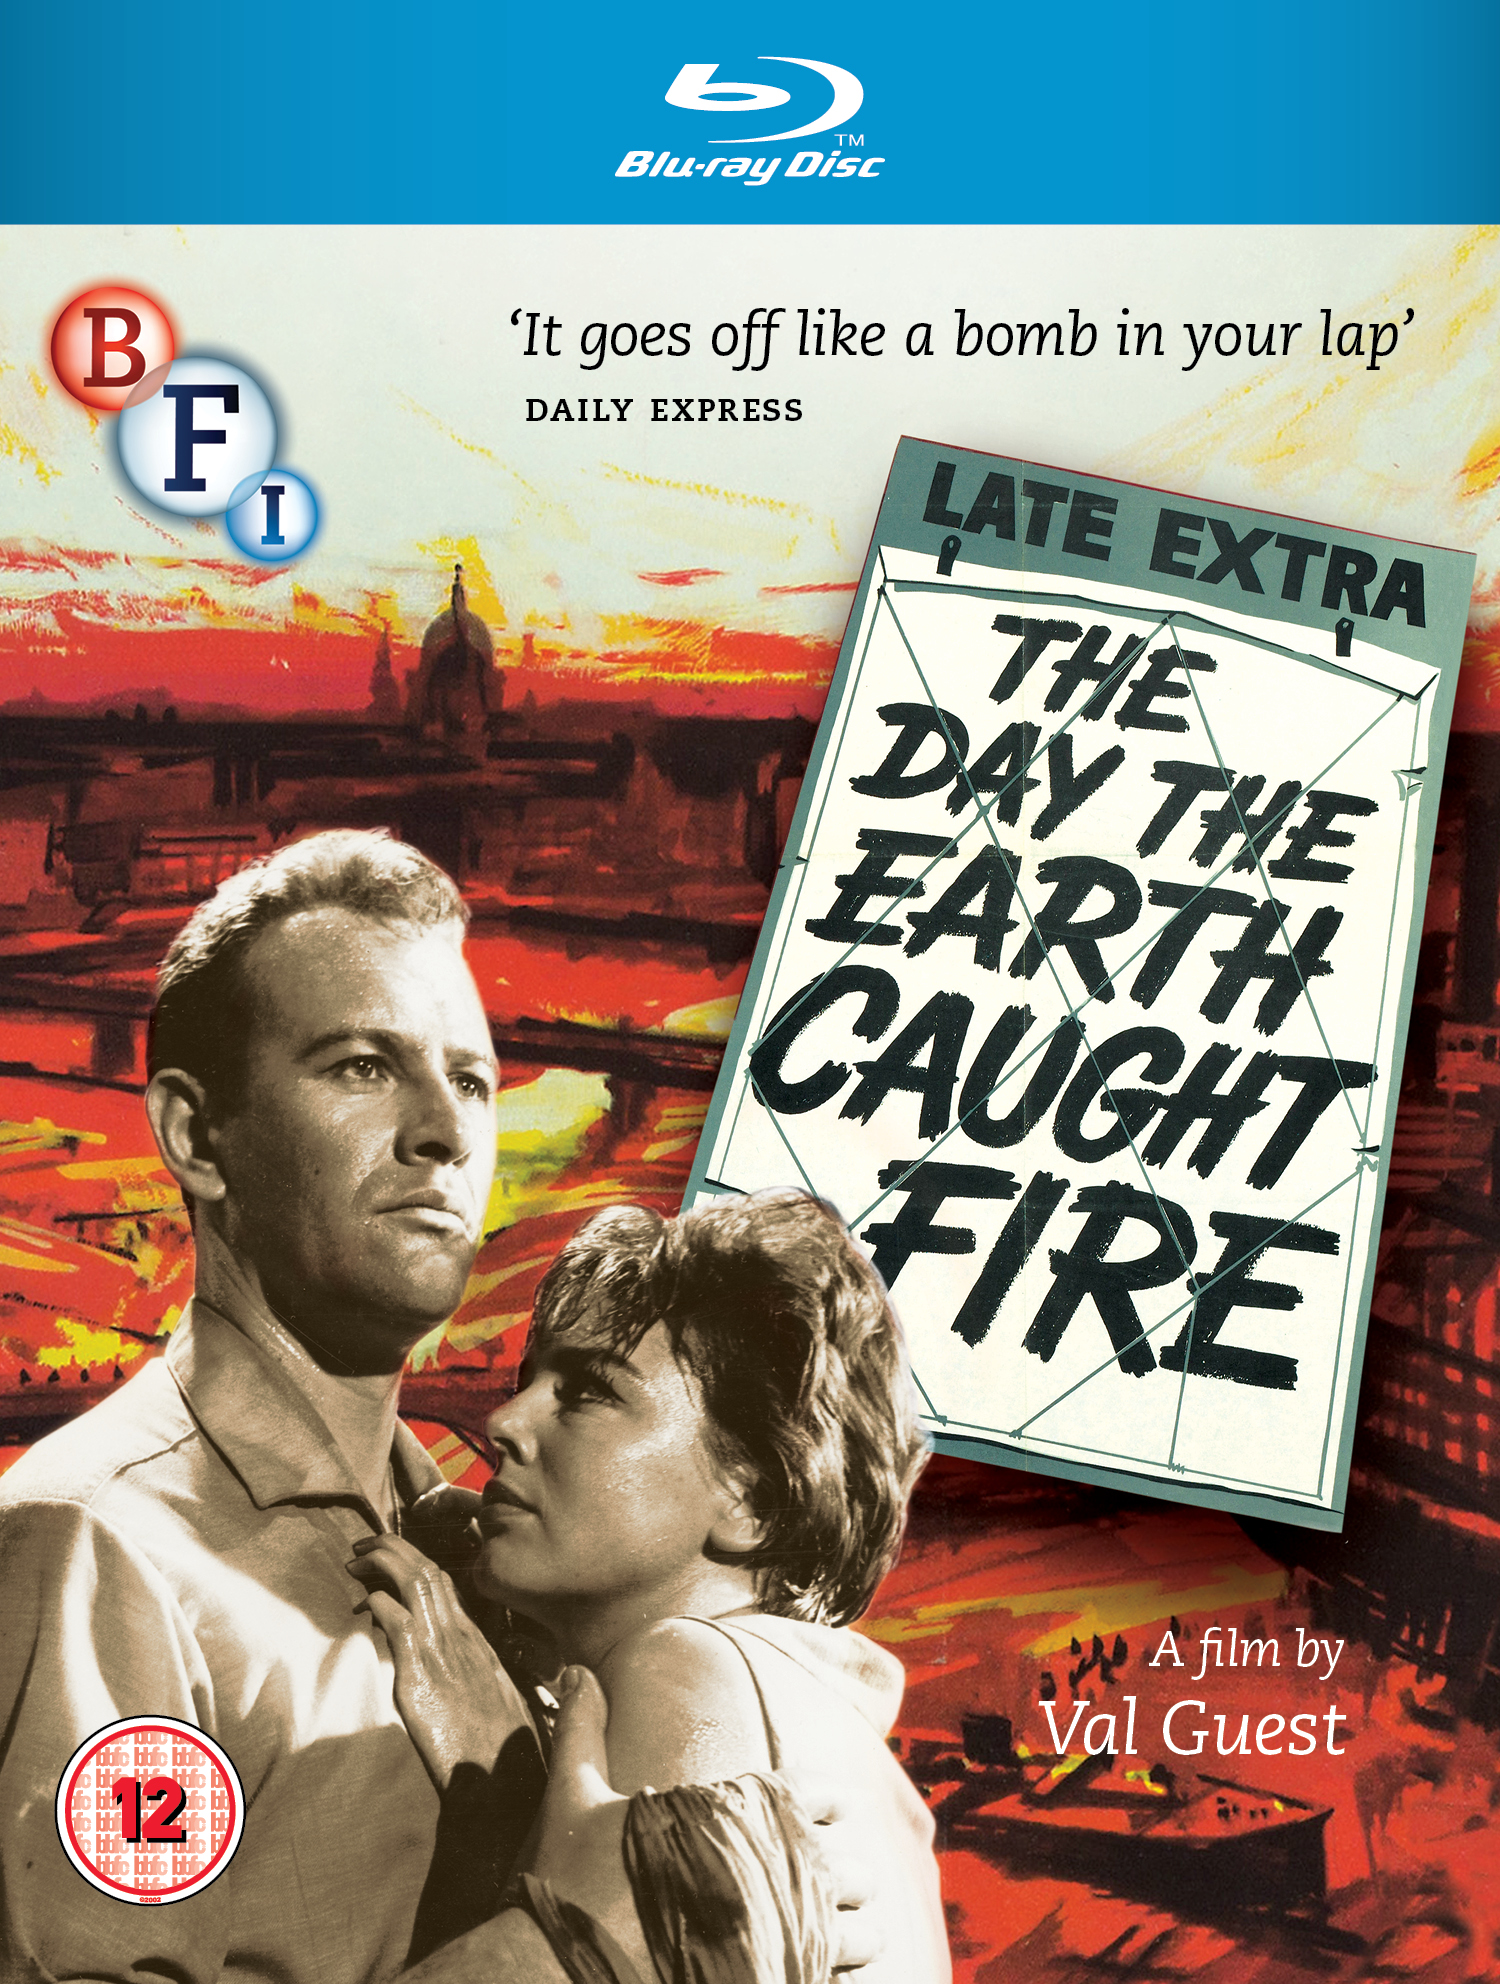 Buy The Day the Earth Caught Fire (Blu-ray)